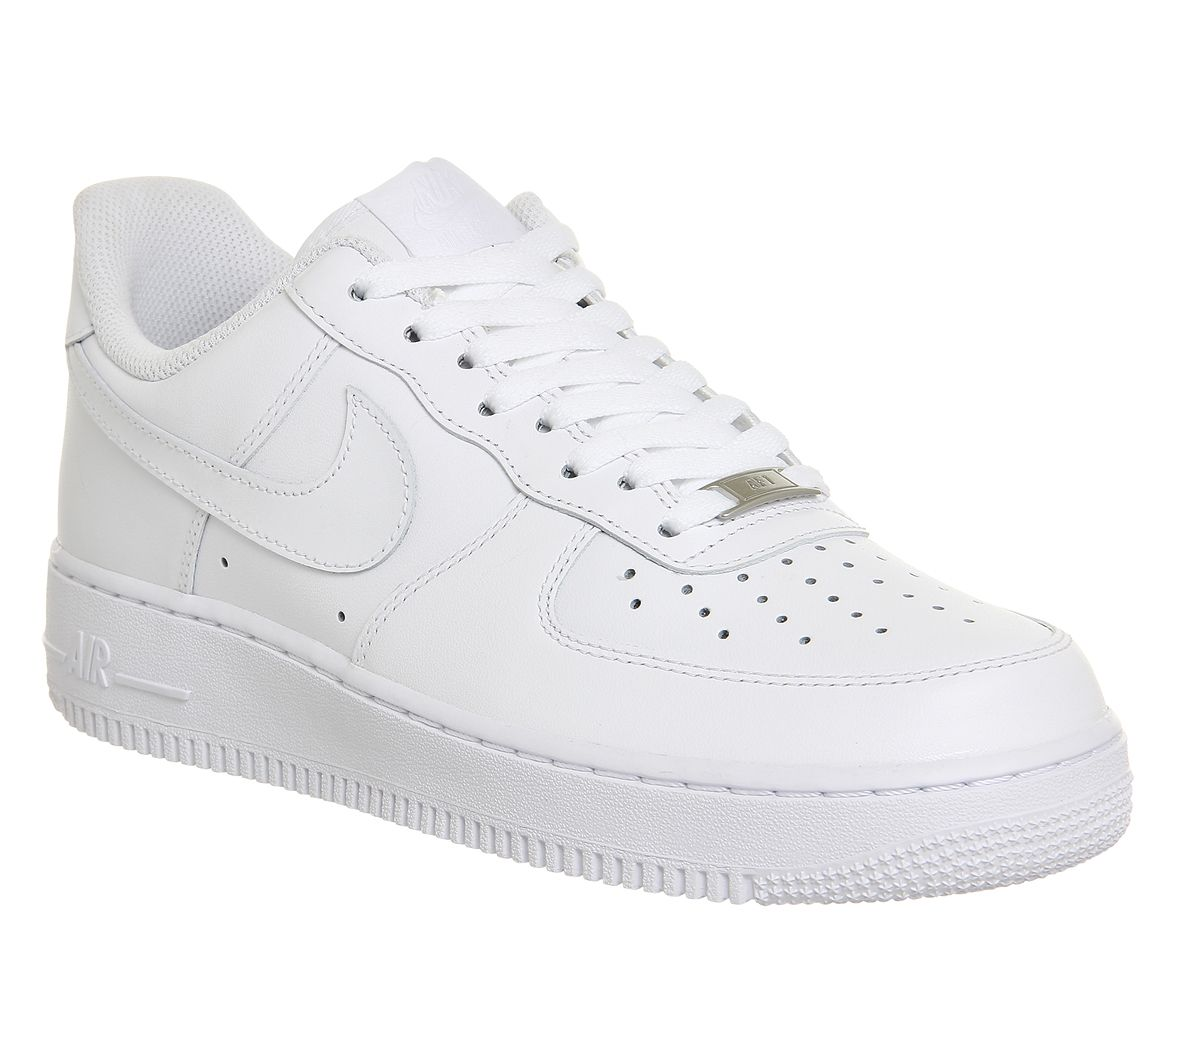 ce3e56d5033fa Nike Air Force 1 Trainers White - His trainers